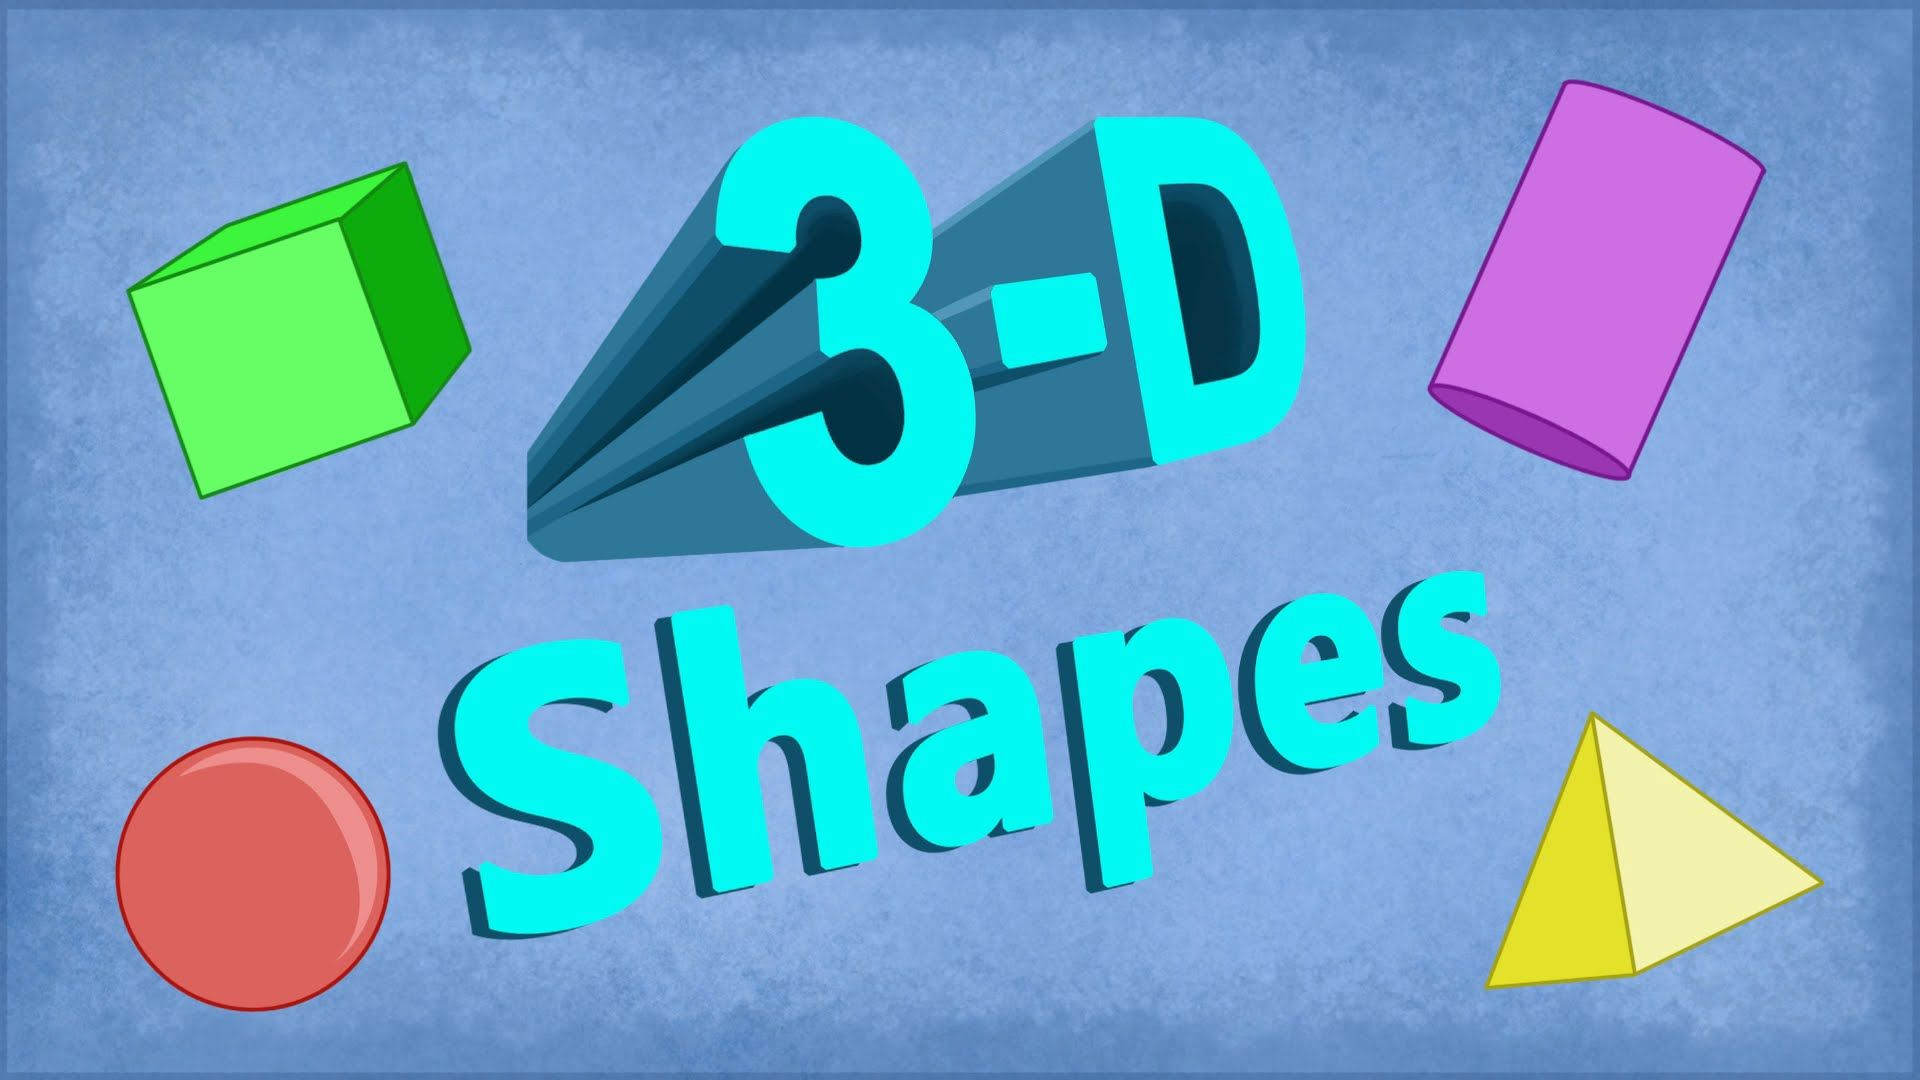 3D SHAPES Worksheets: with 3D Shapes Activities, Video, and 3D ...